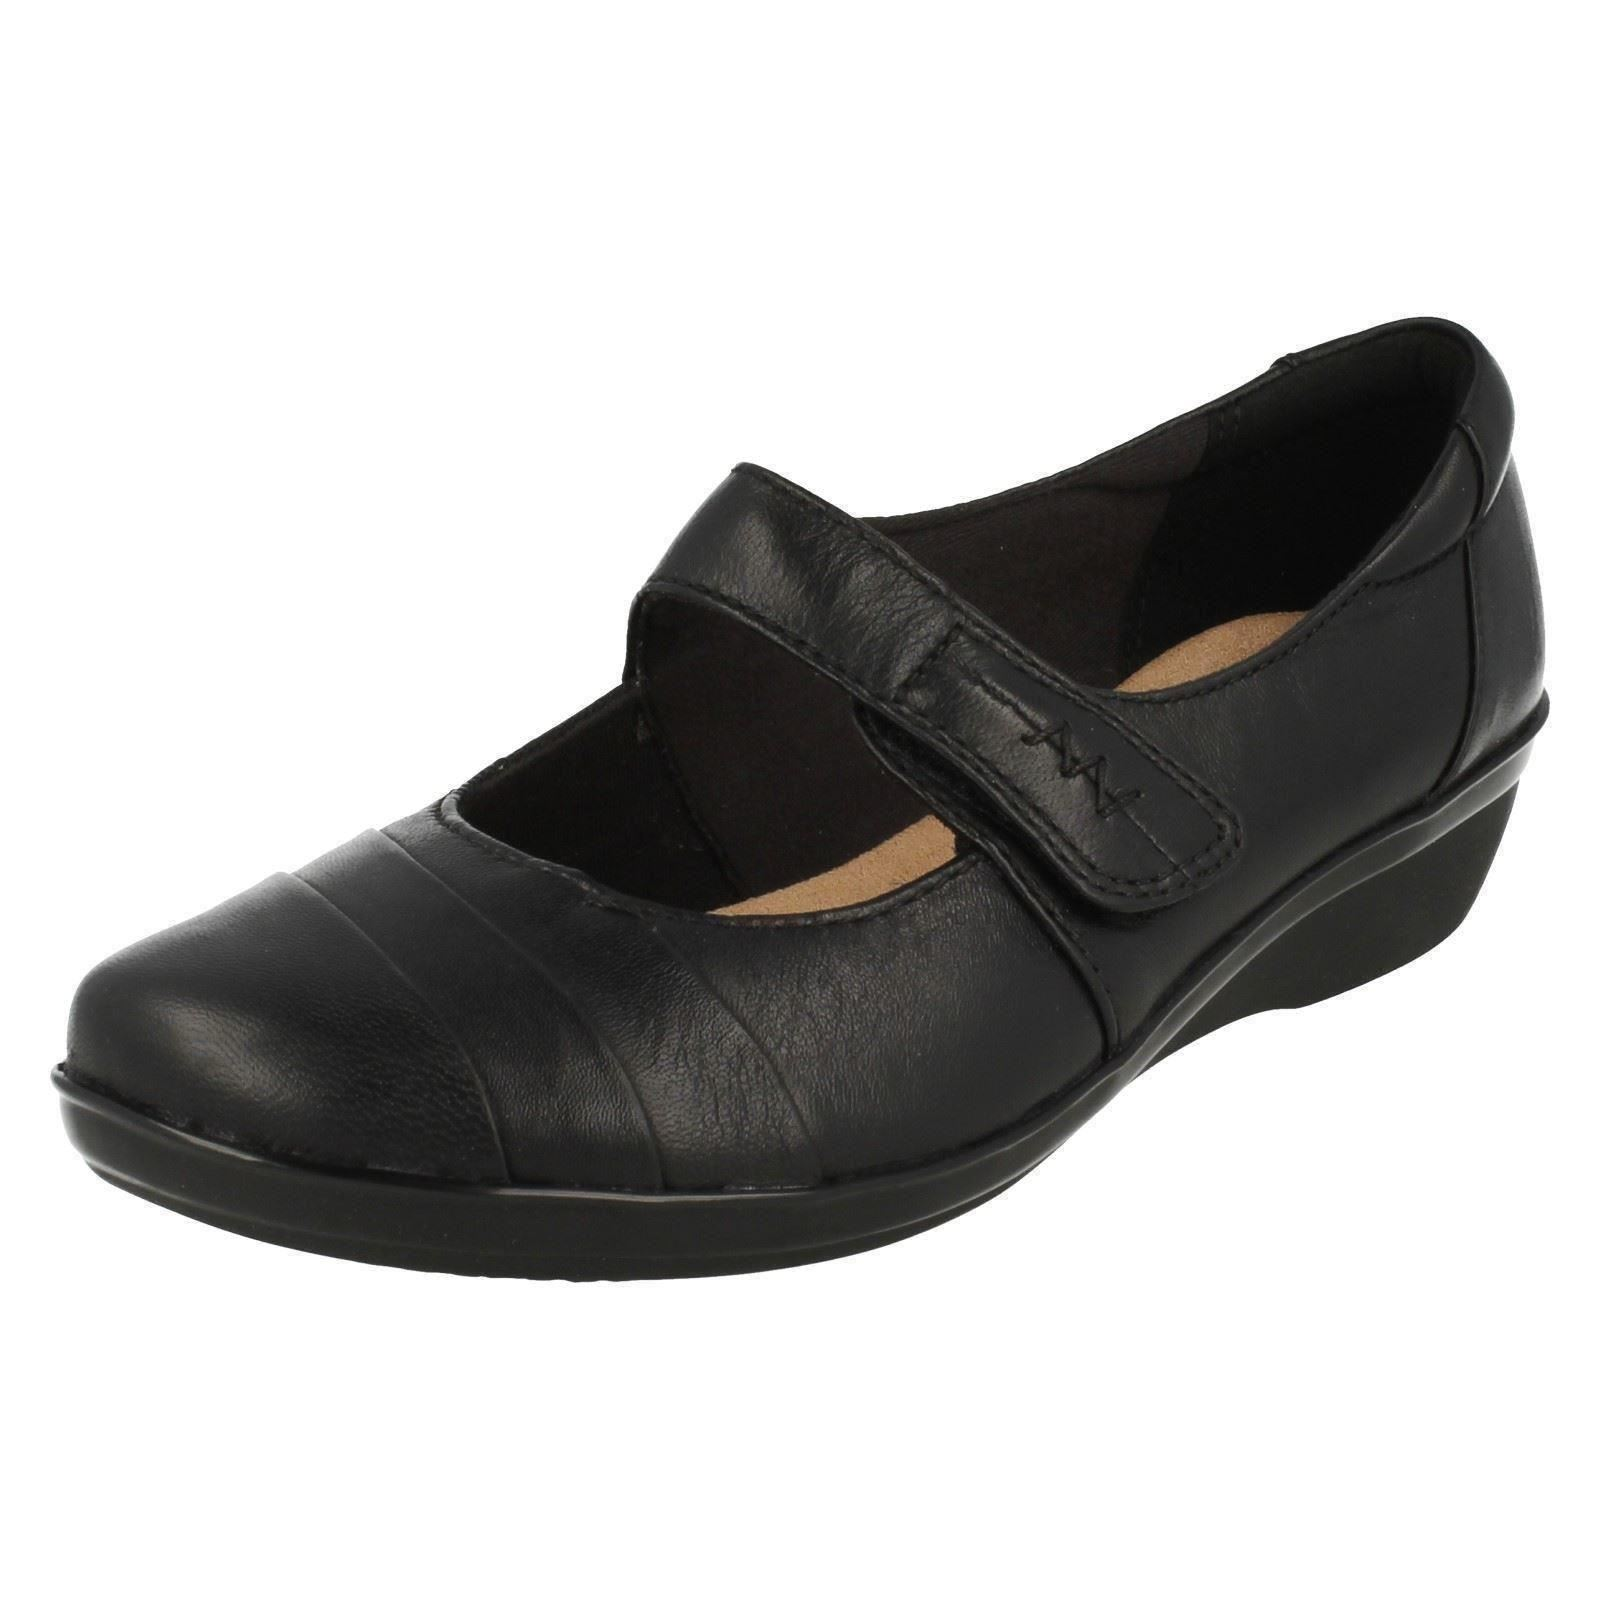 Clarks Everlay Kennon Ladies Shoes Mary Jane Black Leather Wide E ... 2c53e8012553